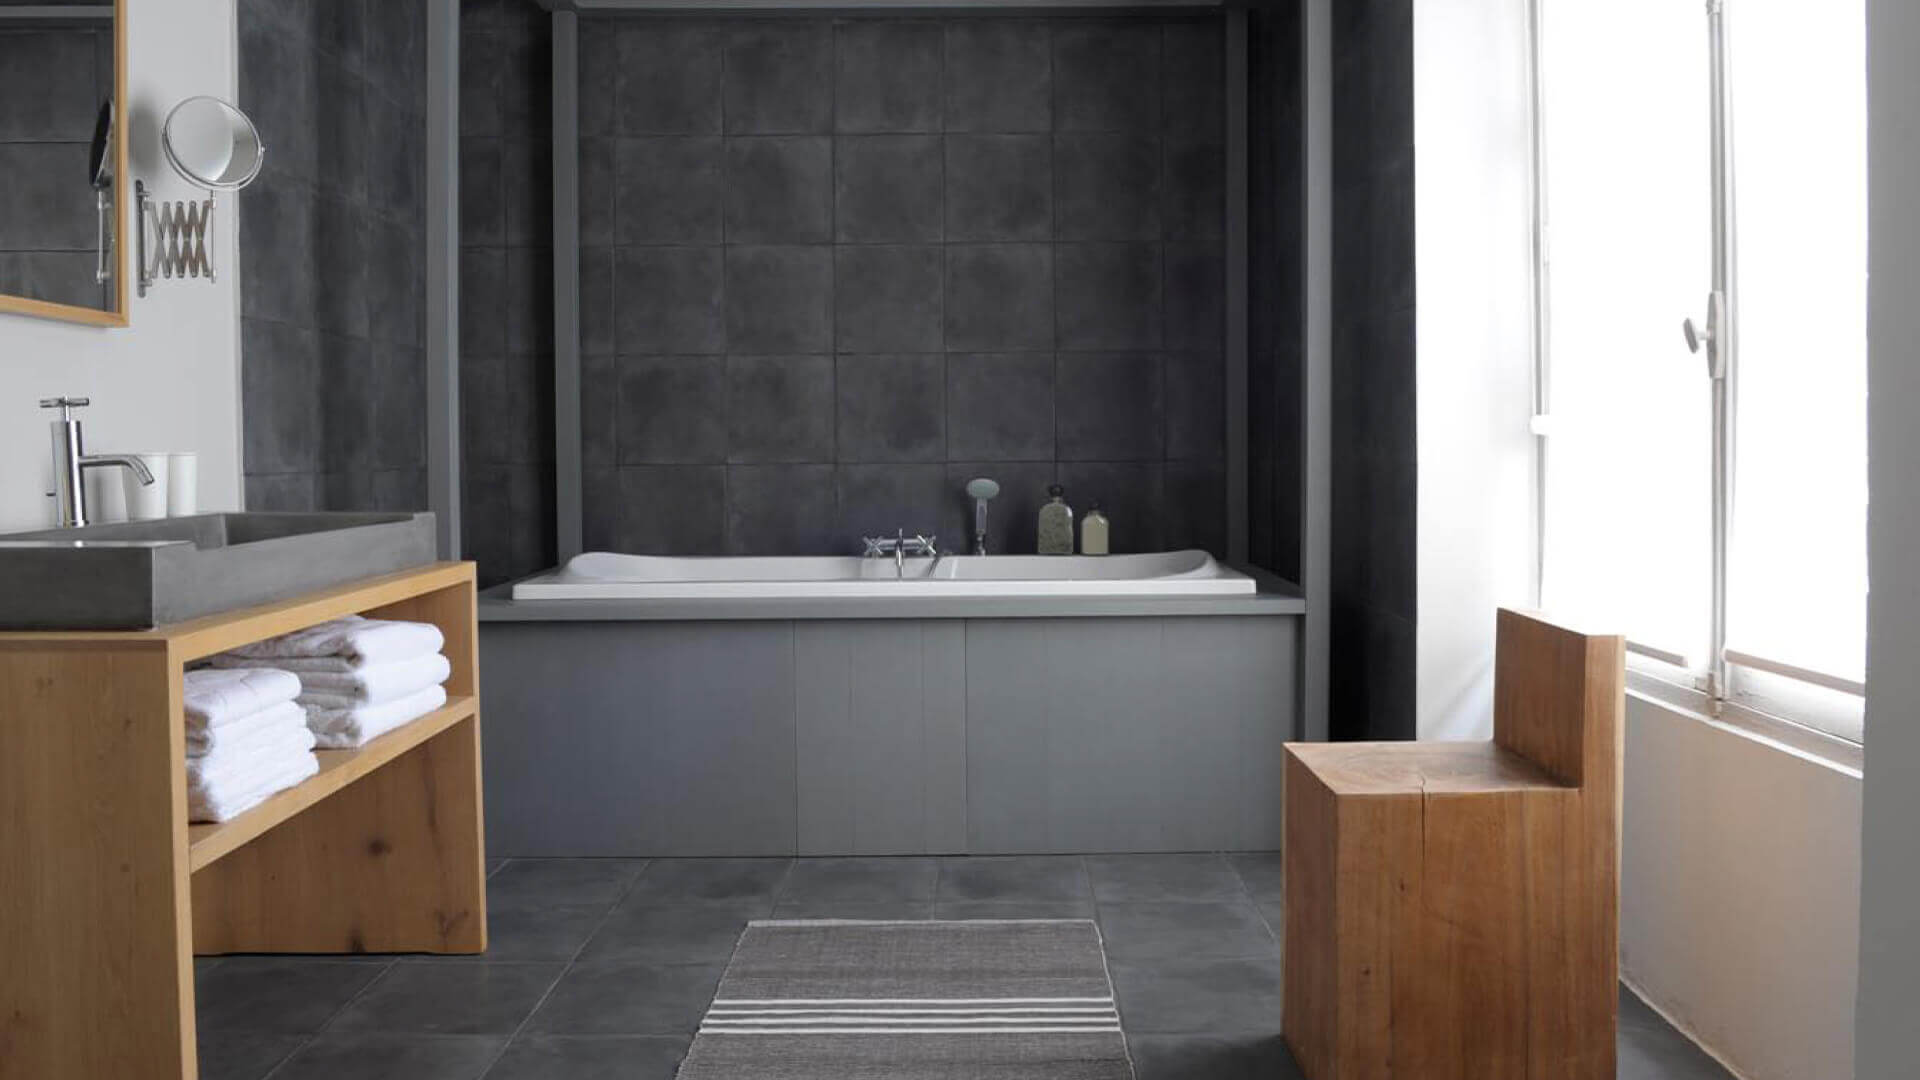 Chateau Perche bathroom with dark tiles and bathtub